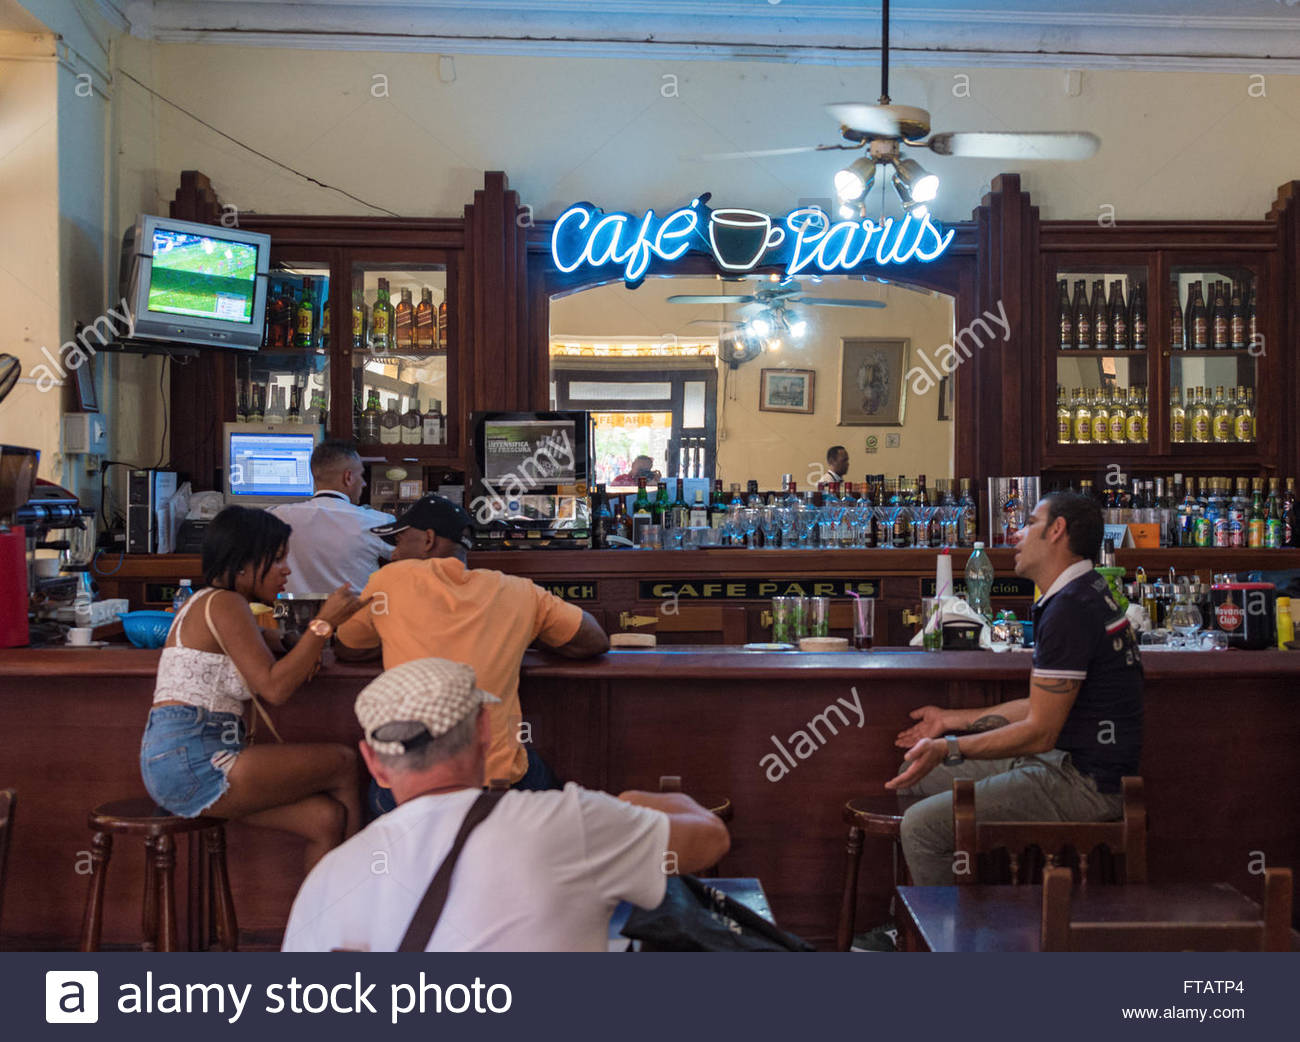 Cafe Paris: tourists having drinks by the bar counter. - Stock Image